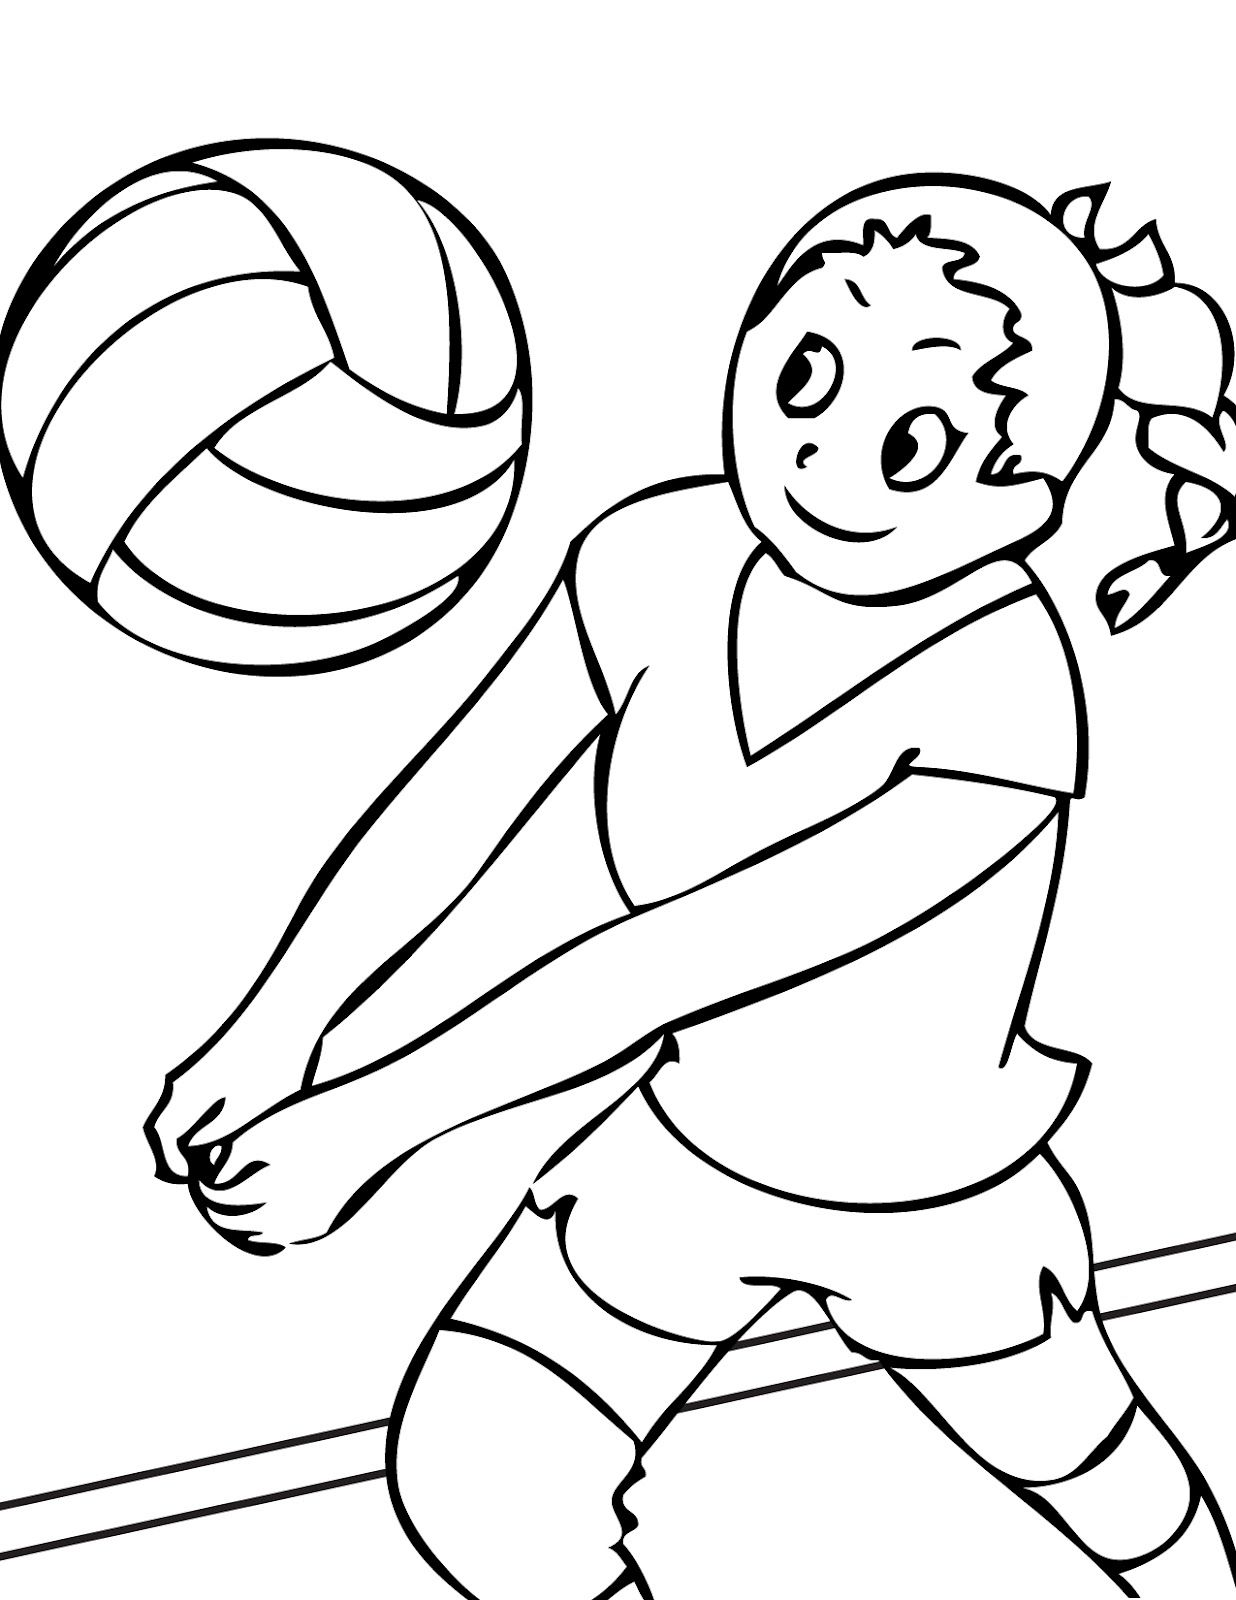 volleyball net coloring pages - photo#20